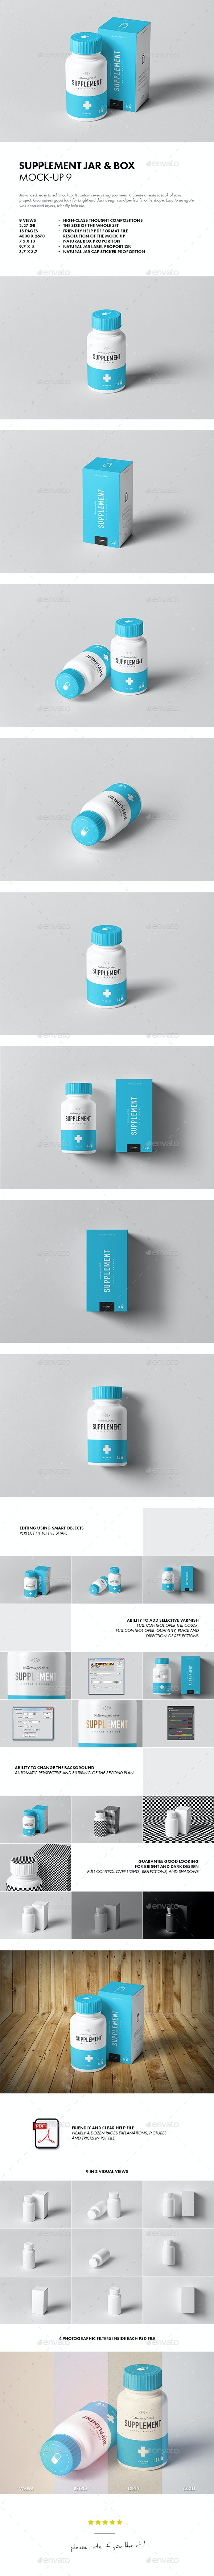 Supplement Jar & Box Mock-up 9 - Miscellaneous Packaging